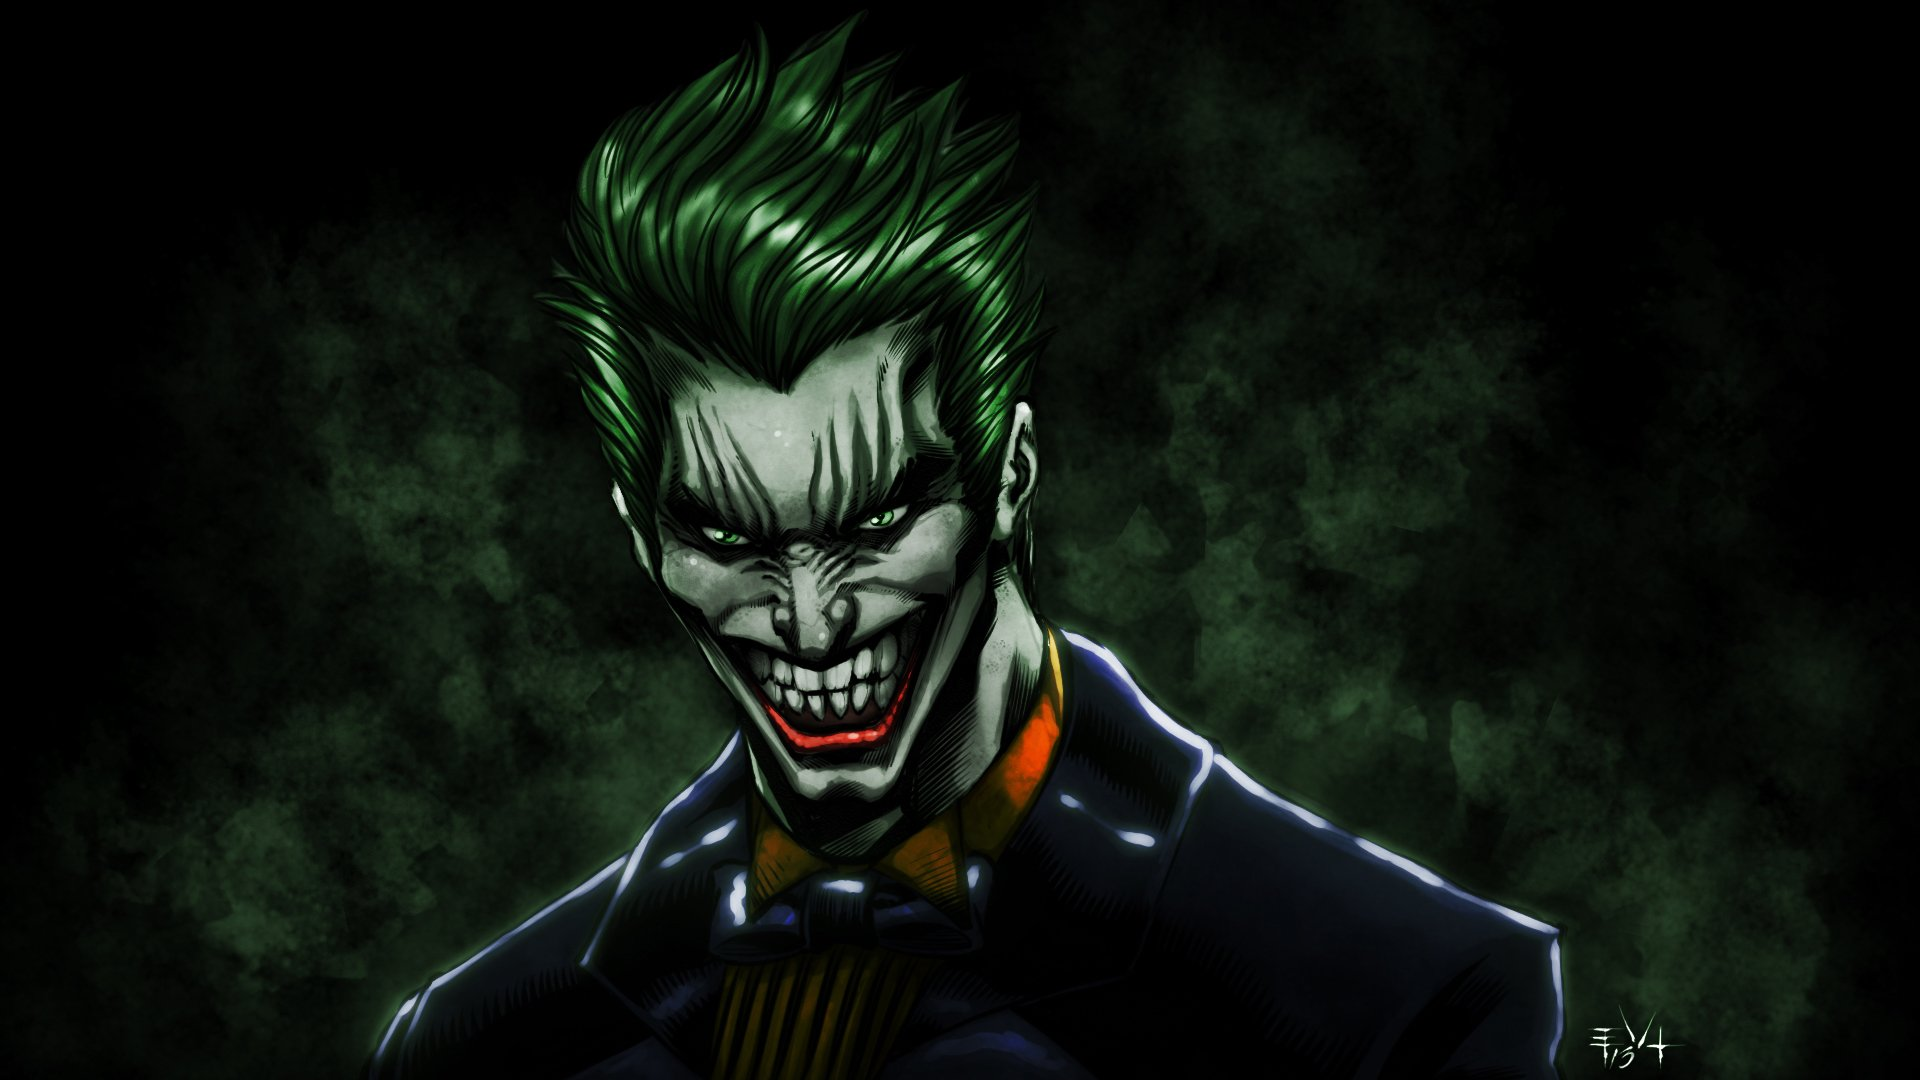 The joker wallpaper and video by erikvonlehmann d5tnjql wallpaper the joker wallpaper and video by erikvonlehmann d5tnjql wallpaper 1920x1080 472765 wallpaperup voltagebd Choice Image